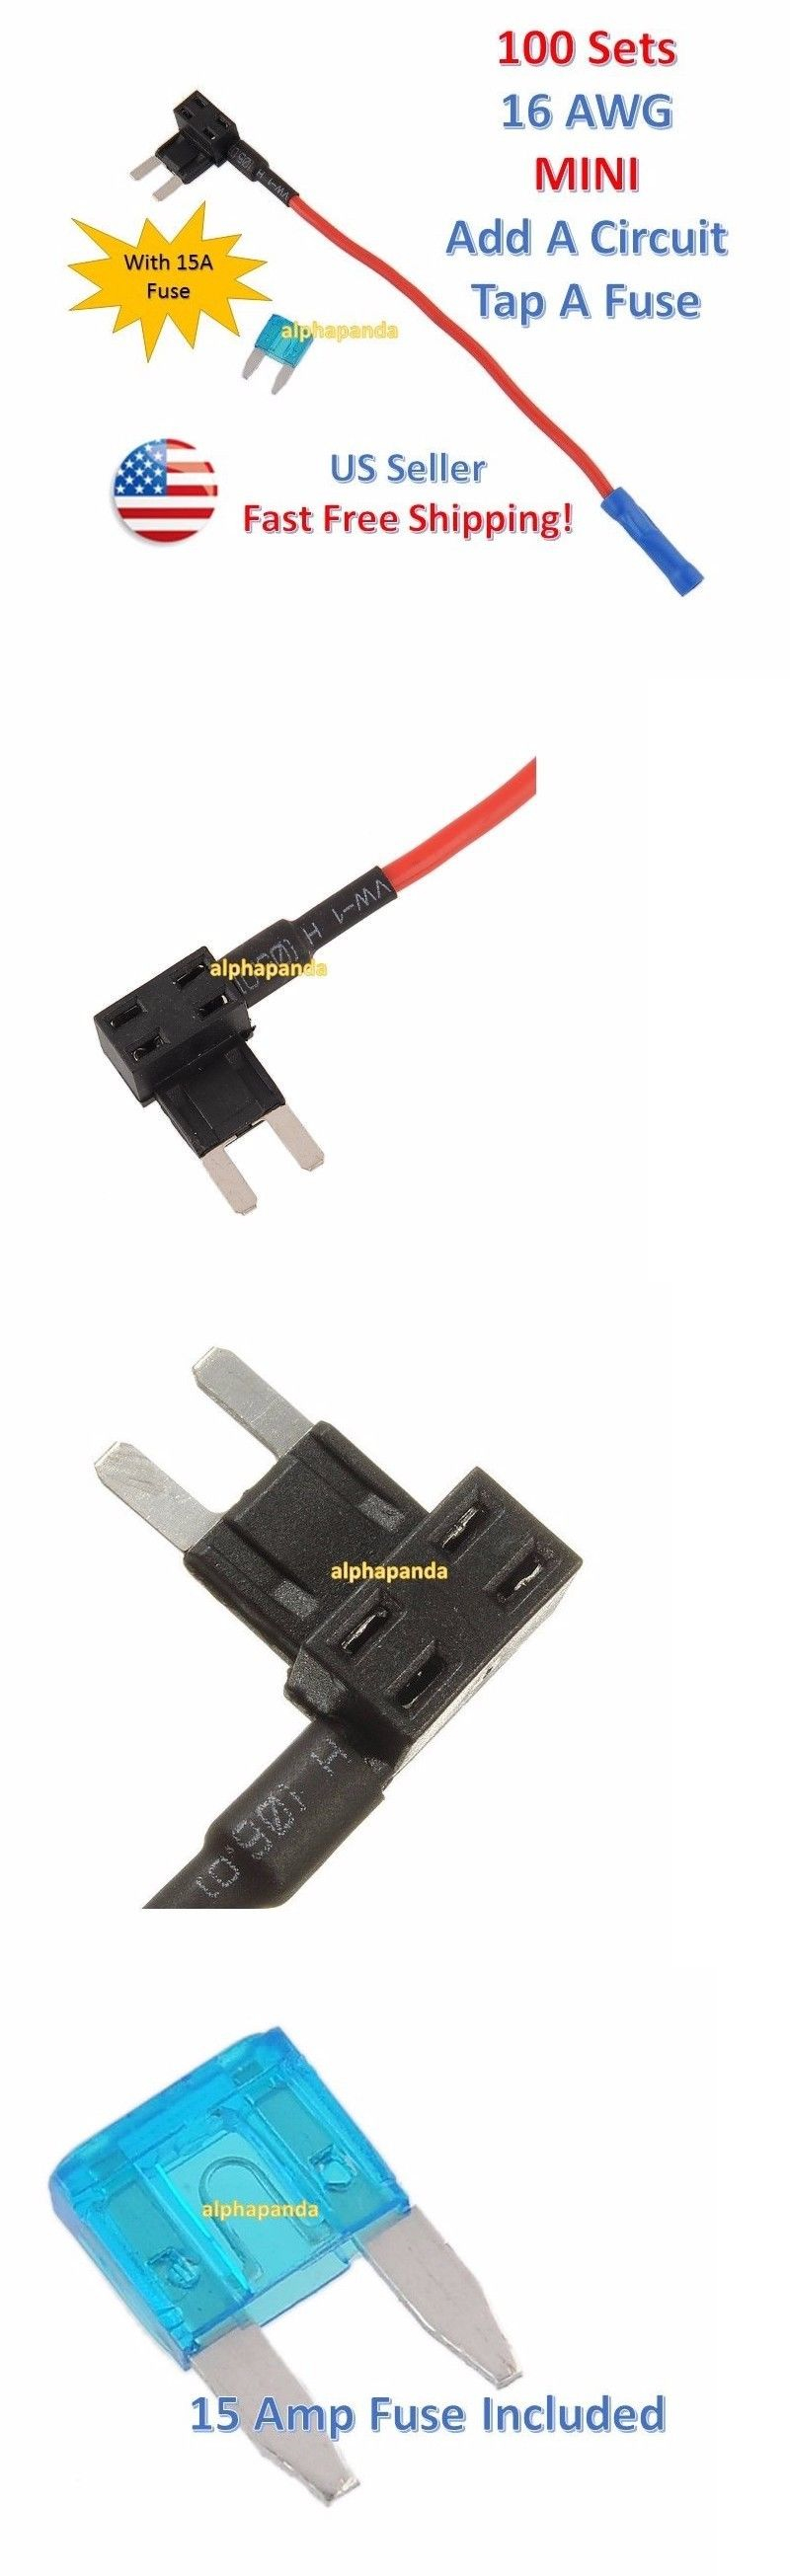 Fantastic Bulldogsecurity.com Wiring Small Dragonfire Pickups Wiring Diagram Flat Bulldog Vehicle 5 Way Pickup Switch Old Wiring Gitar BlueDiy Solar Panel System Wiring Diagram Fuses And Fuse Holders: 100X 16 Awg Gauge Car Auto Truck Add A ..